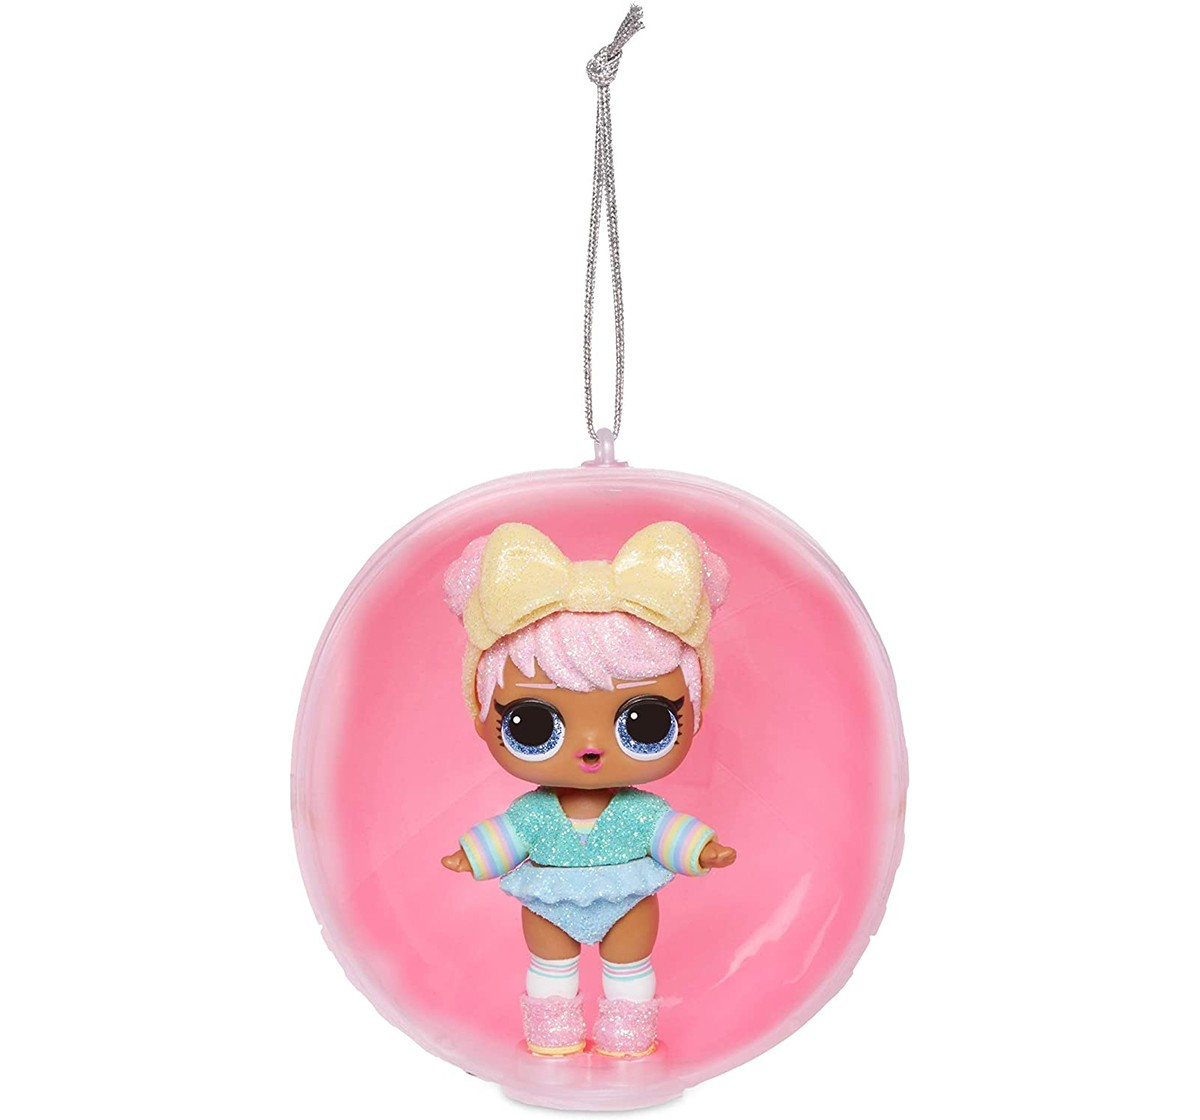 Lol  Surprise Sparkle Series Collectible Dolls for Girls age 6Y+